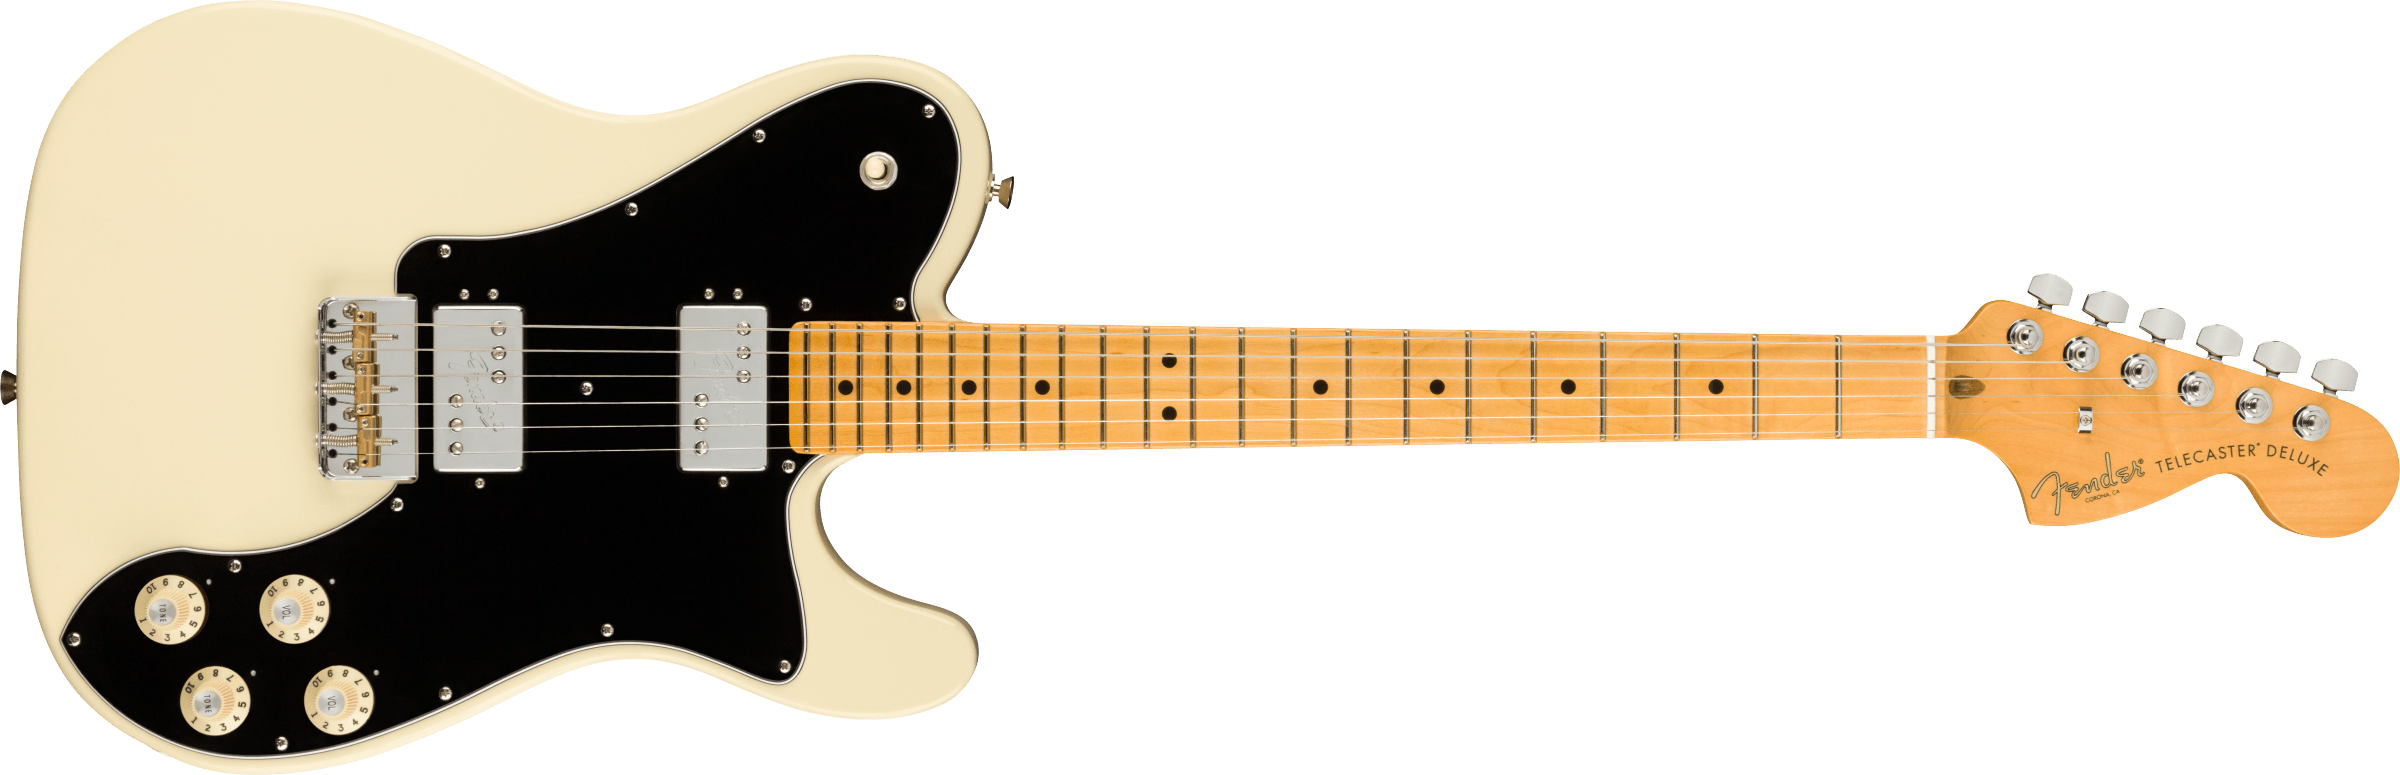 FENDER-American-Professional-II-Telecaster-Deluxe-Maple-Fingerboard-Olympic-White-sku-571005267